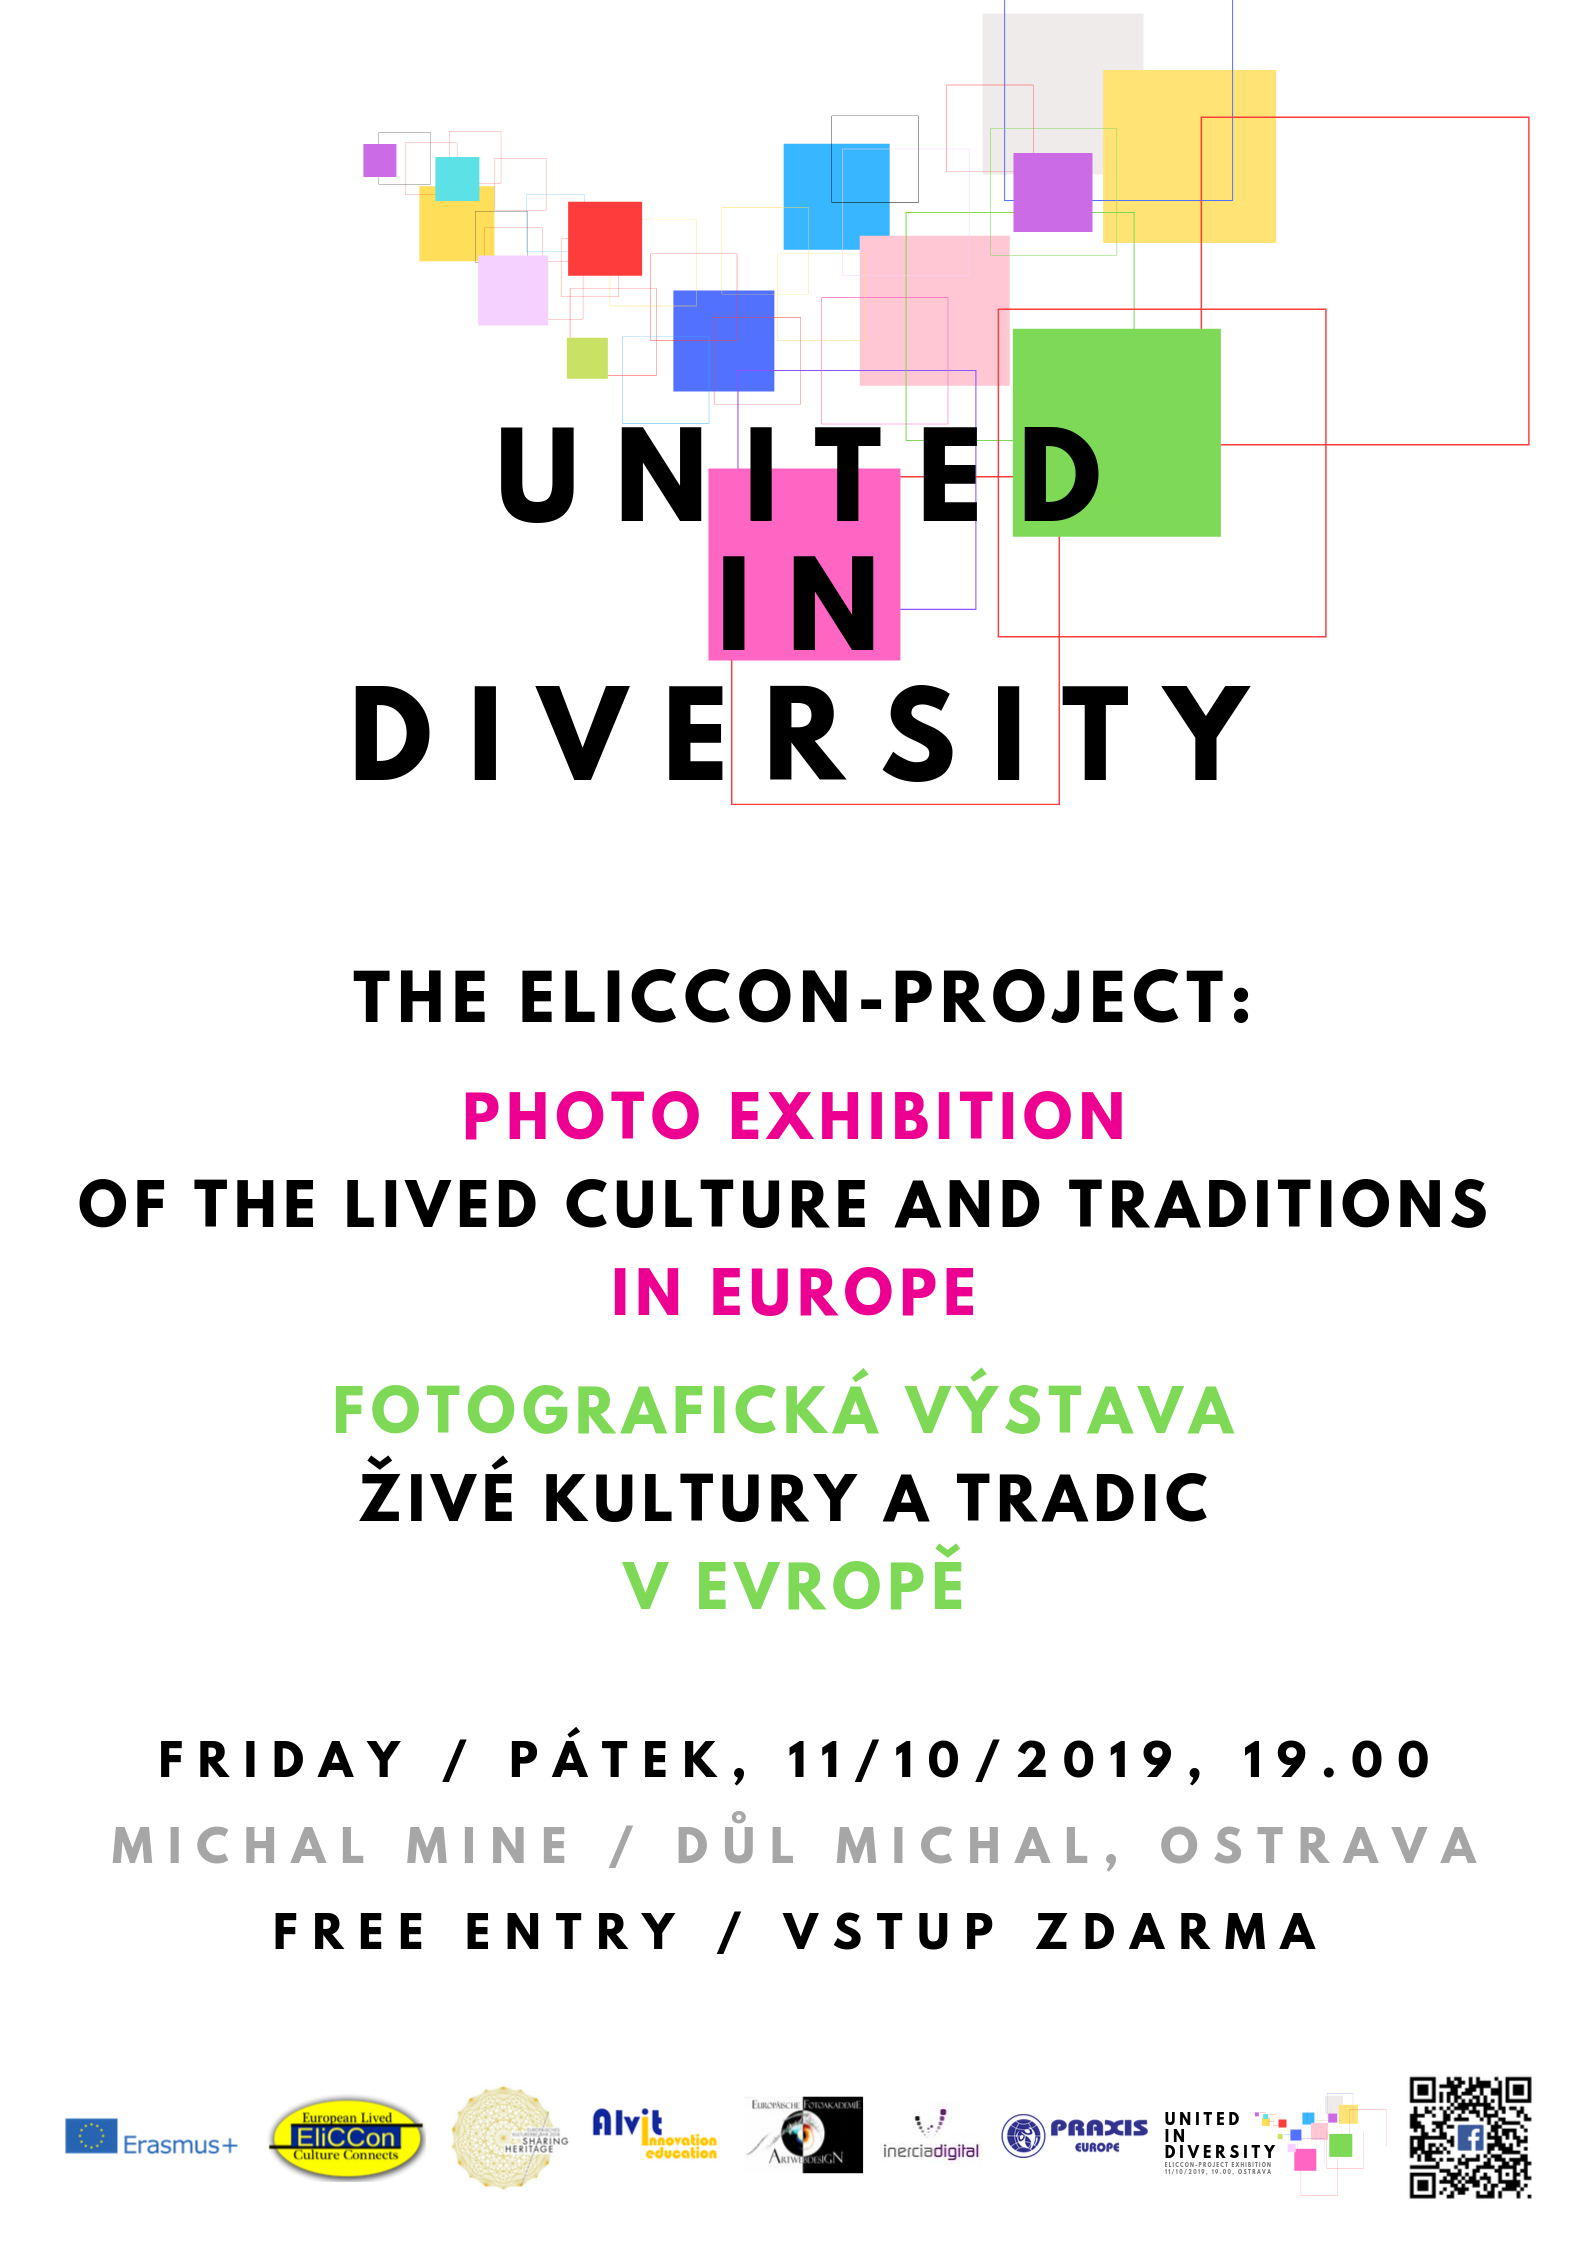 Opening of the EliCCon-Exhibition on 11th of October 2019, 19.00